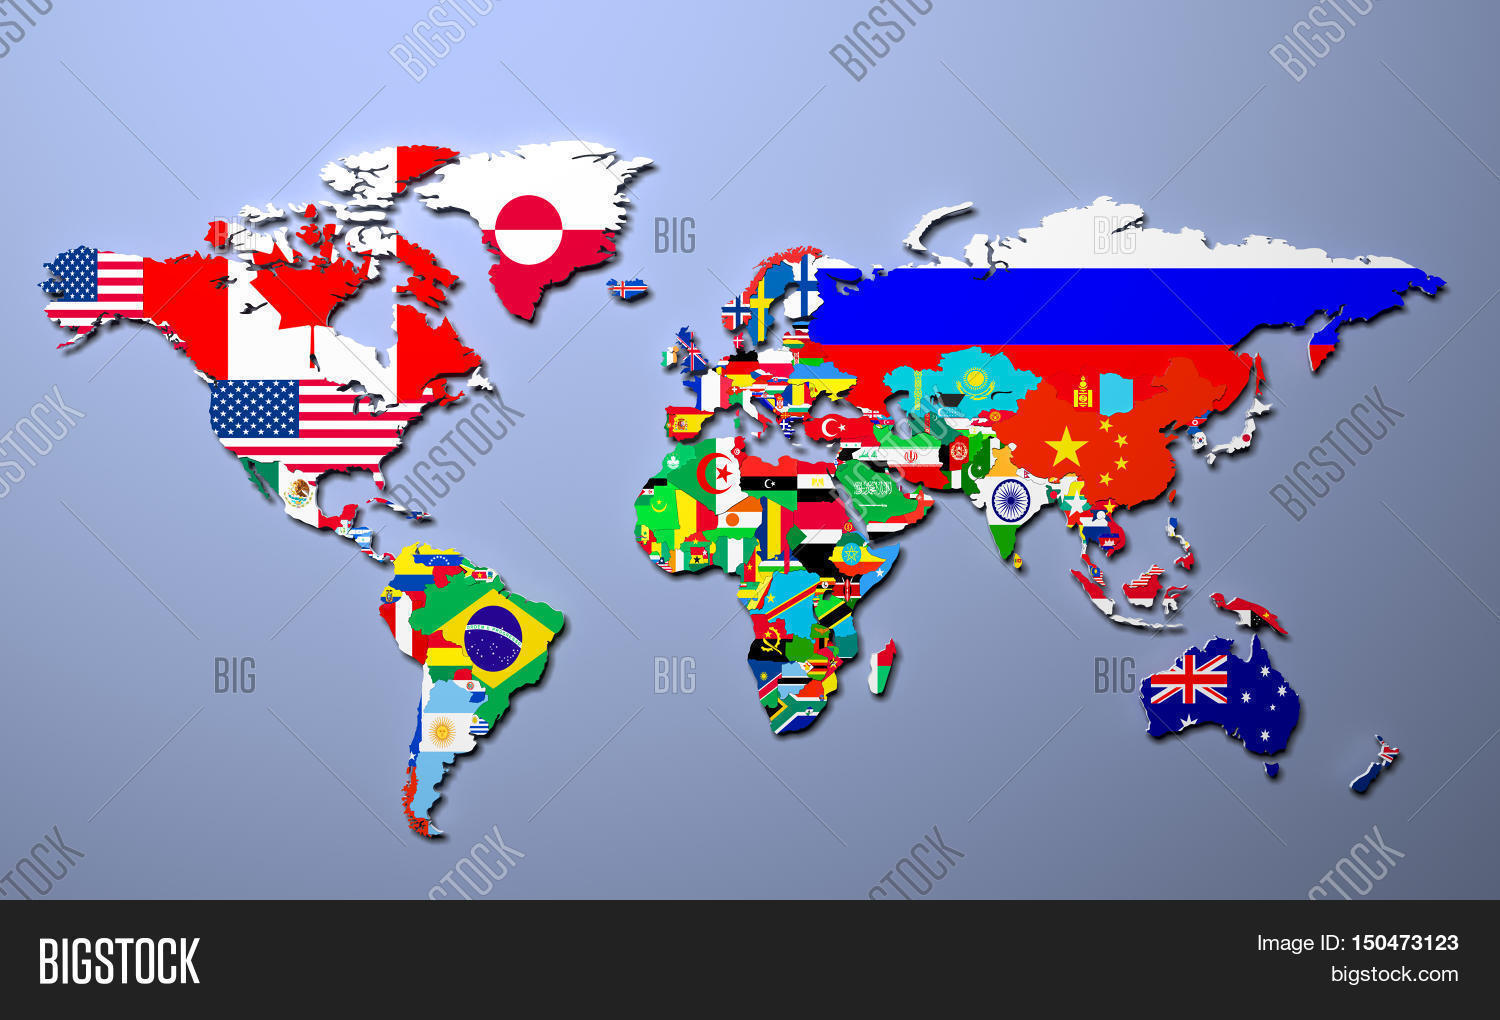 Imagen y foto world map all states their flags 3d bigstock the world map with all states and their flags 3d illustration gumiabroncs Image collections